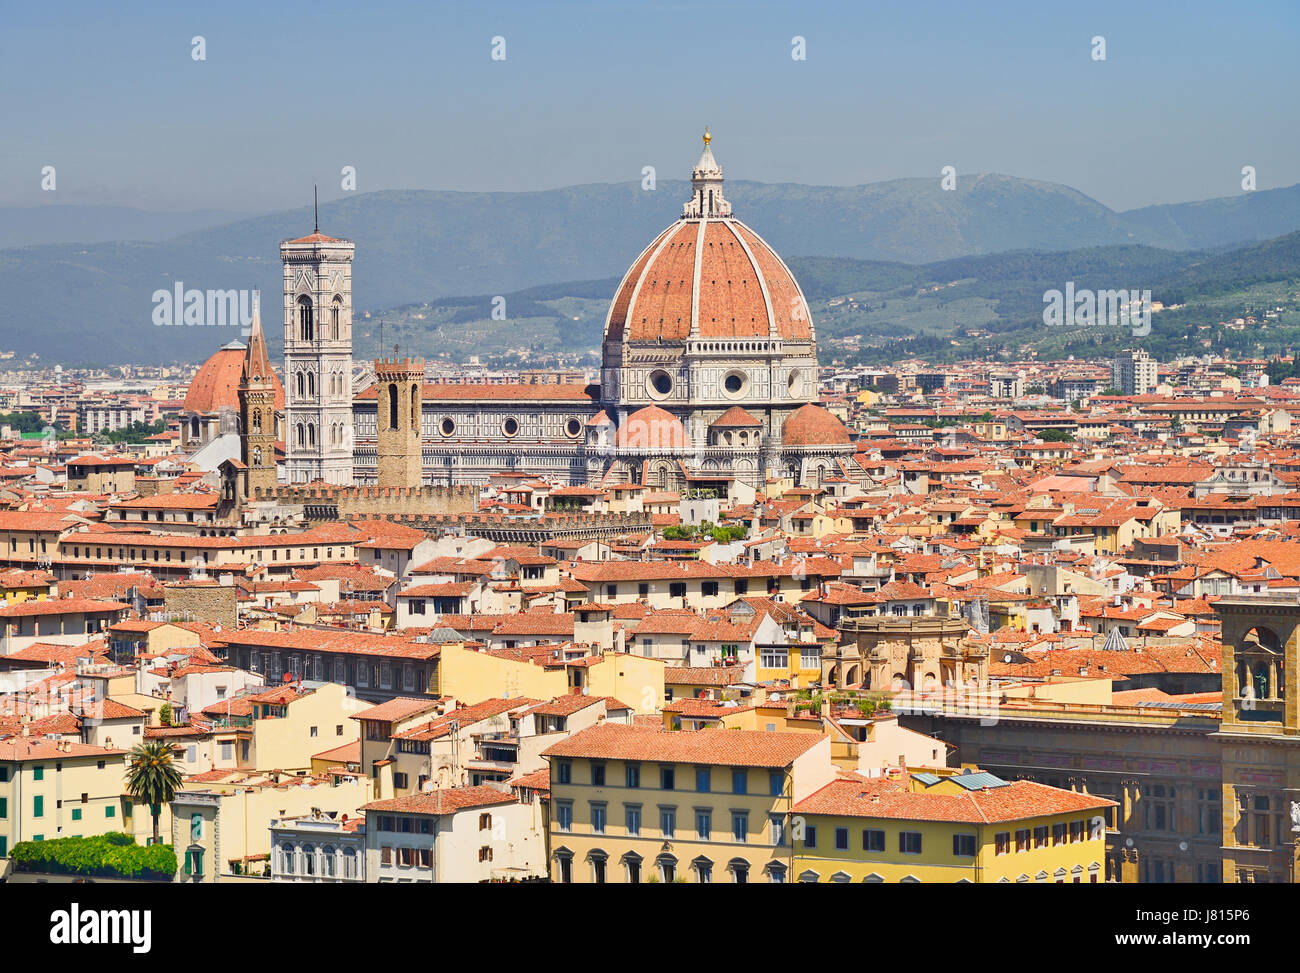 Italy, Tuscany, Florence, Vista of the city with the dome of the Cathedral seen from Piazzale Michelangelo. - Stock Image